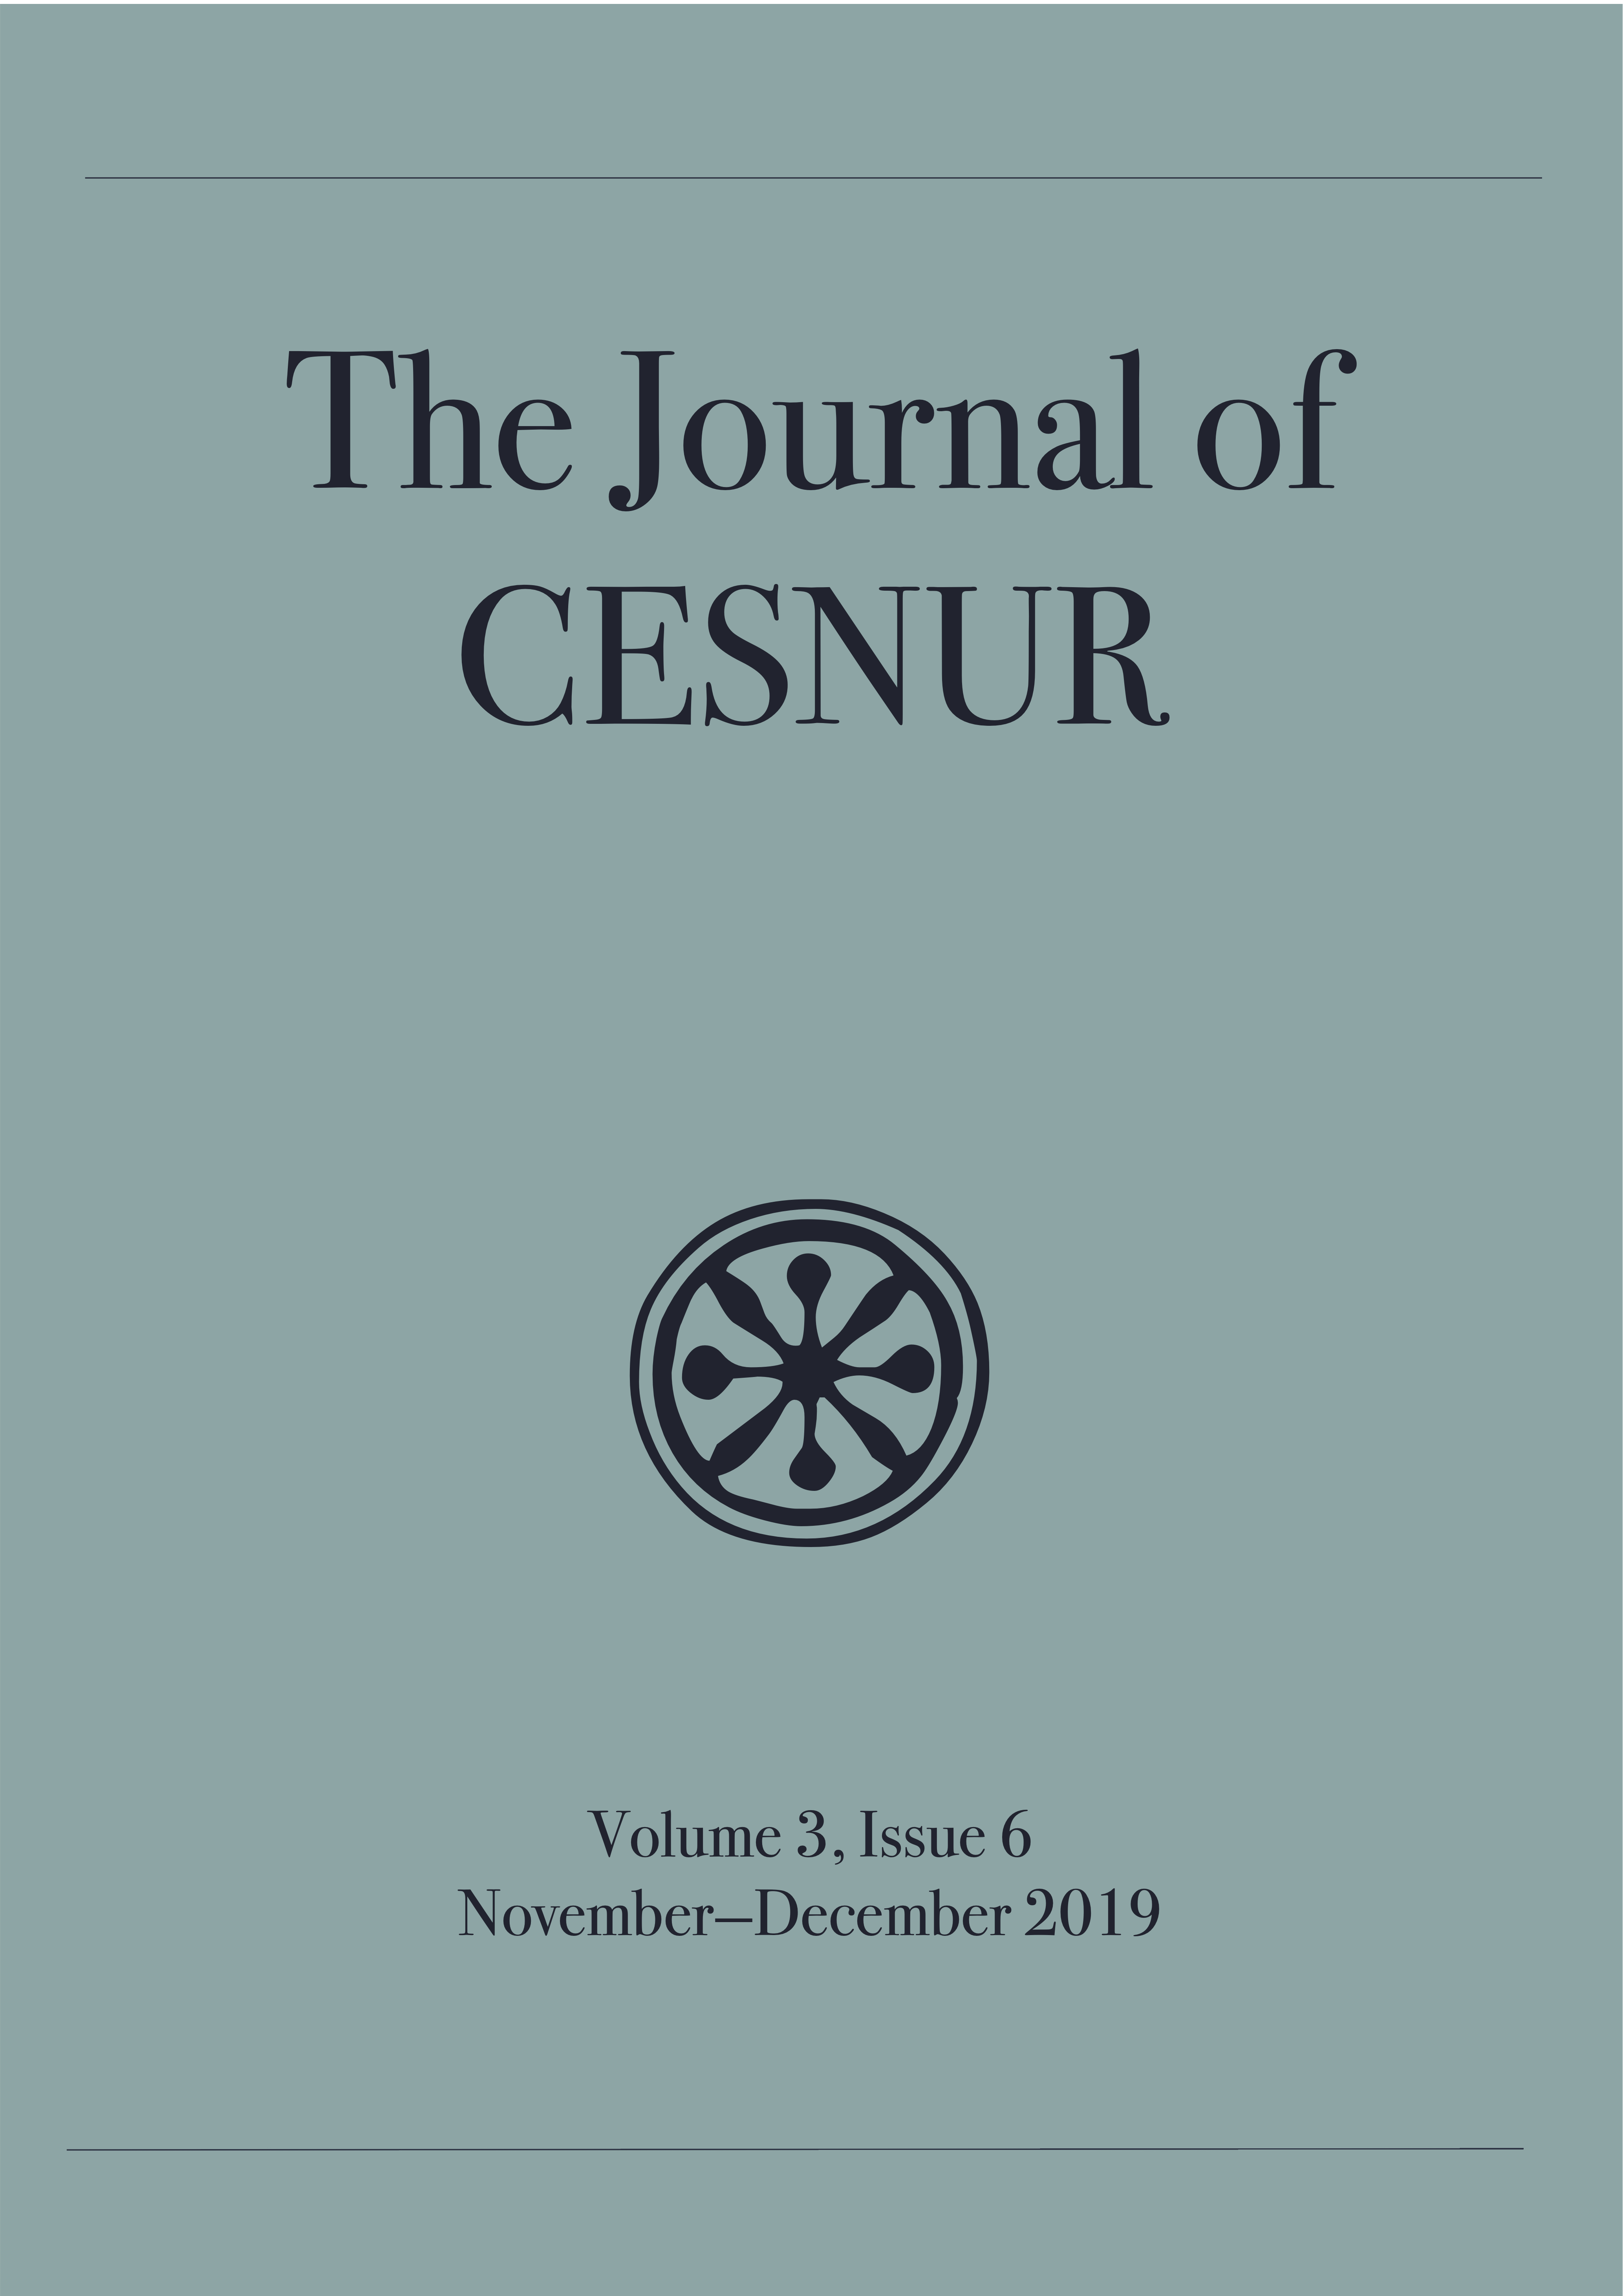 The Journal of Cesnur Volume 3 Issue 6 cover